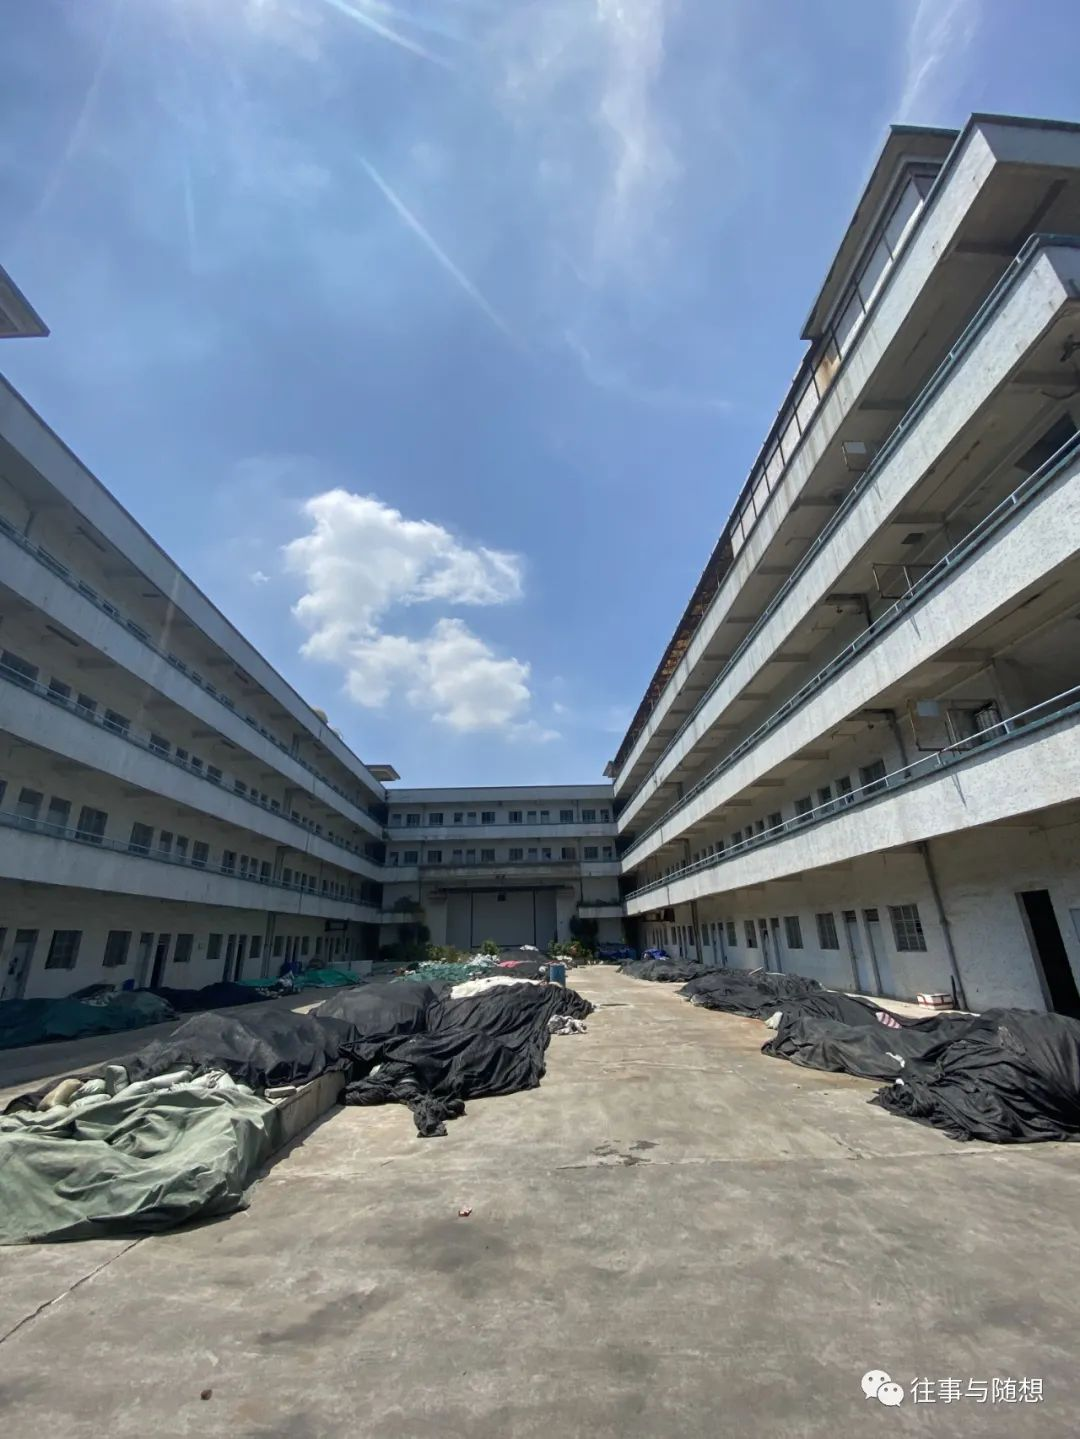 Under a bright blue sky, a rectangular courtyard surrounded by four-story concrete building. The courtyard is heaped with debris covered with green and black tarps.